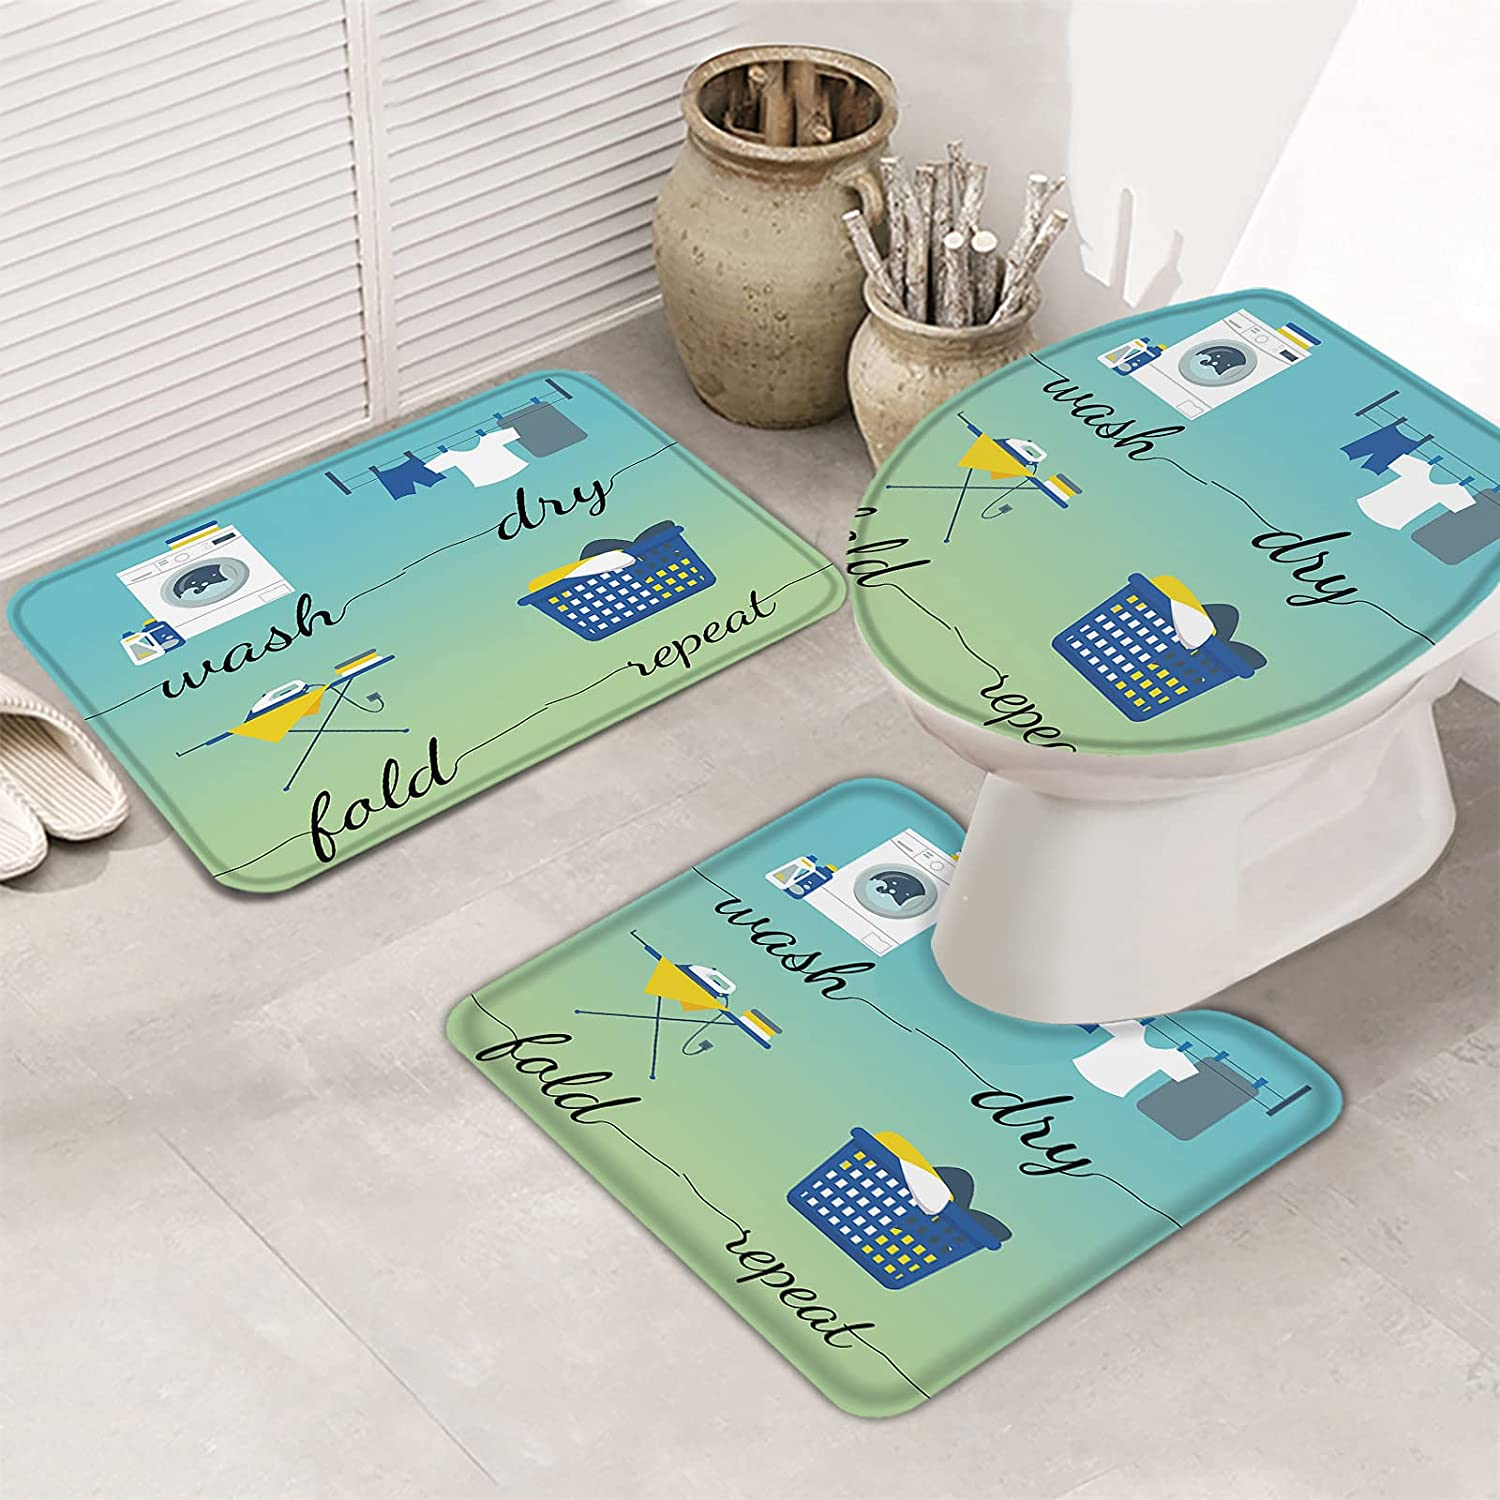 Outlet ☆ Free Shipping Super Special SALE held 3 Piece Set Bathroom Rugs for Wash G Green Fold Blue Try Repeat